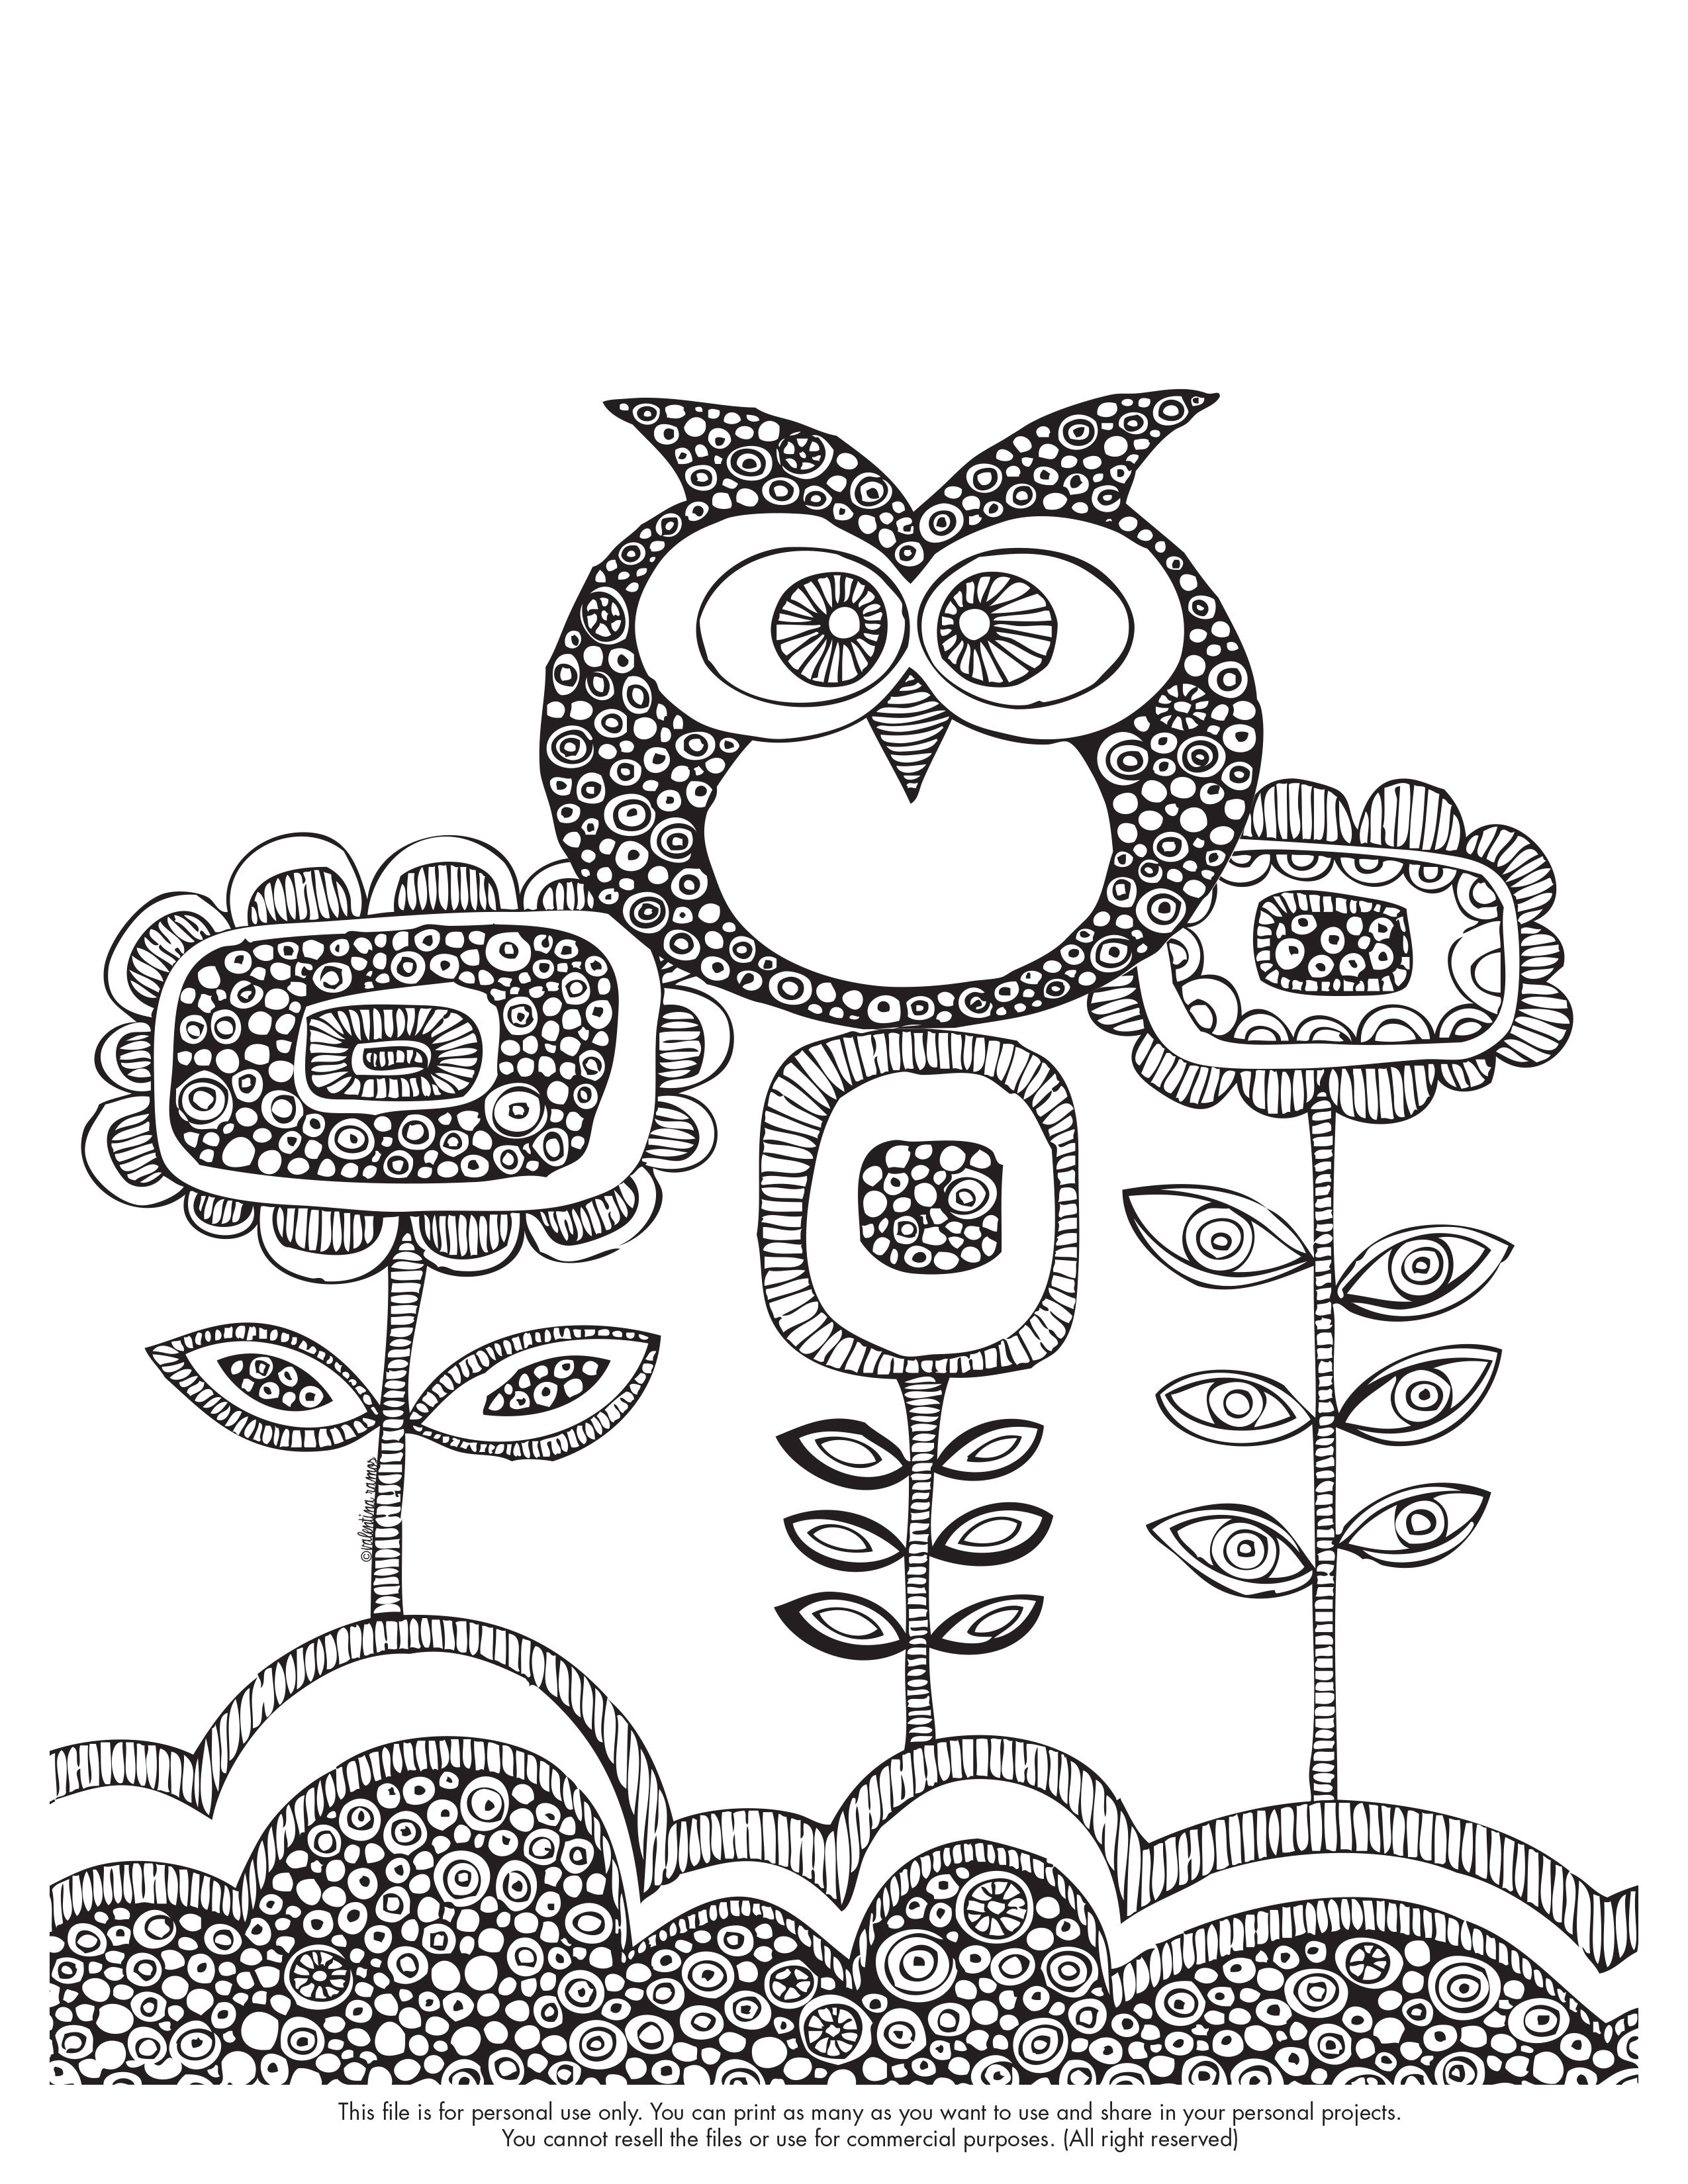 happy coloring monday free coloring page save the image in your computer to print - Printing Coloring Pictures 2